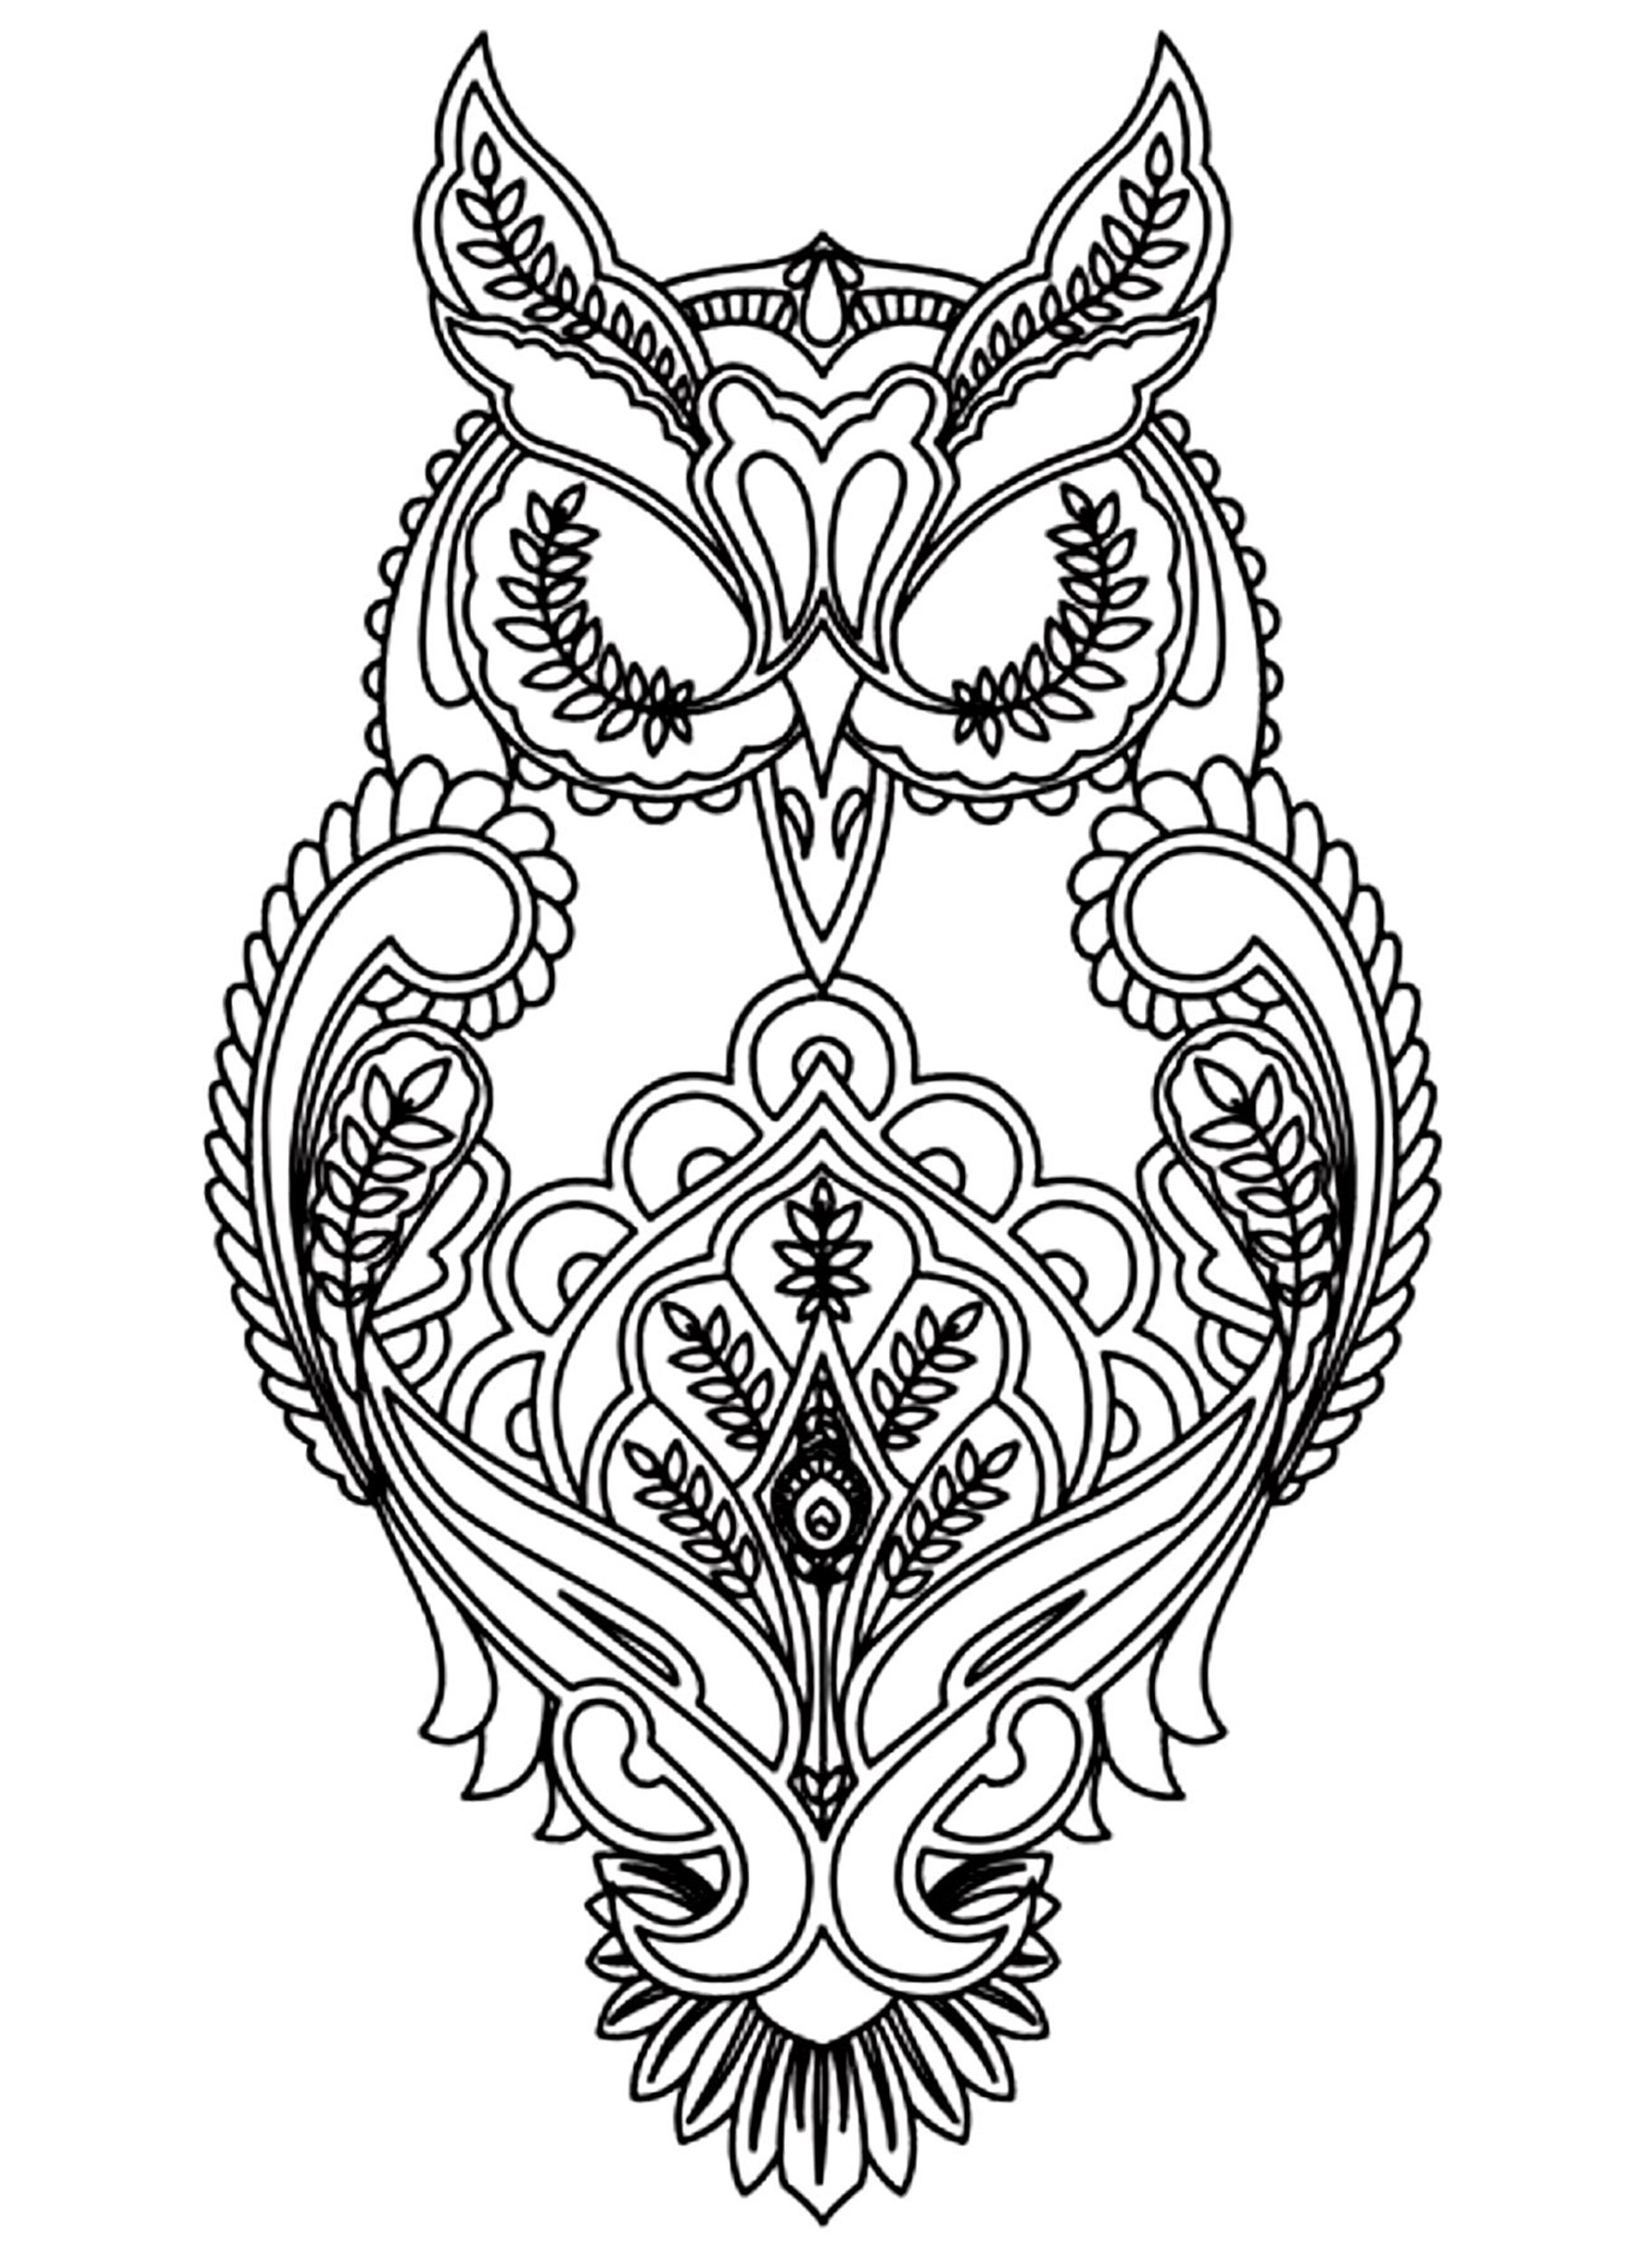 Owl - Owls Adult Coloring Pages